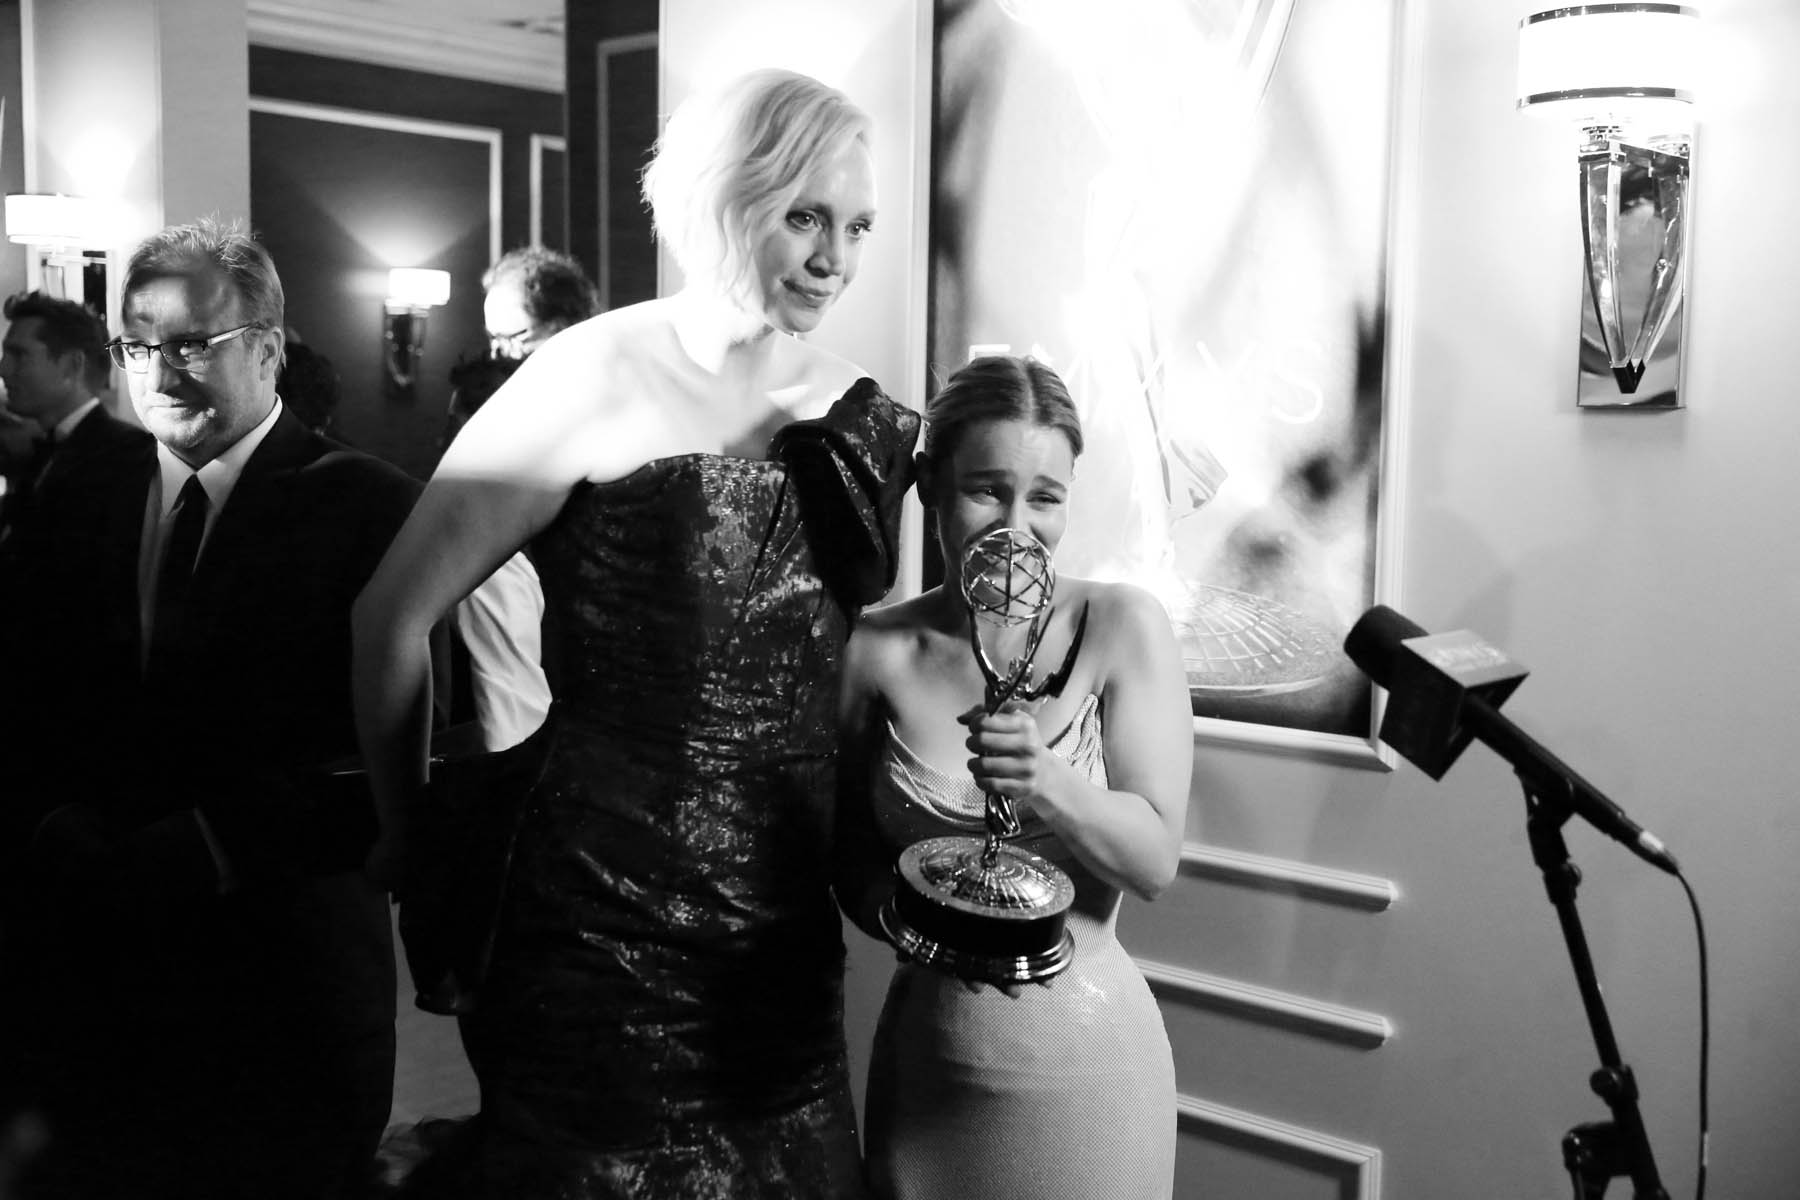 Gwendoline Christie, left, and Emilia Clarke pose with an emmy at the 68th Primetime Emmy Awards on Sunday, Sept. 18, 2016, at the Microsoft Theater in Los Angeles. (Photo by Matt Sayles/Invision for the Television Academy/AP Images)